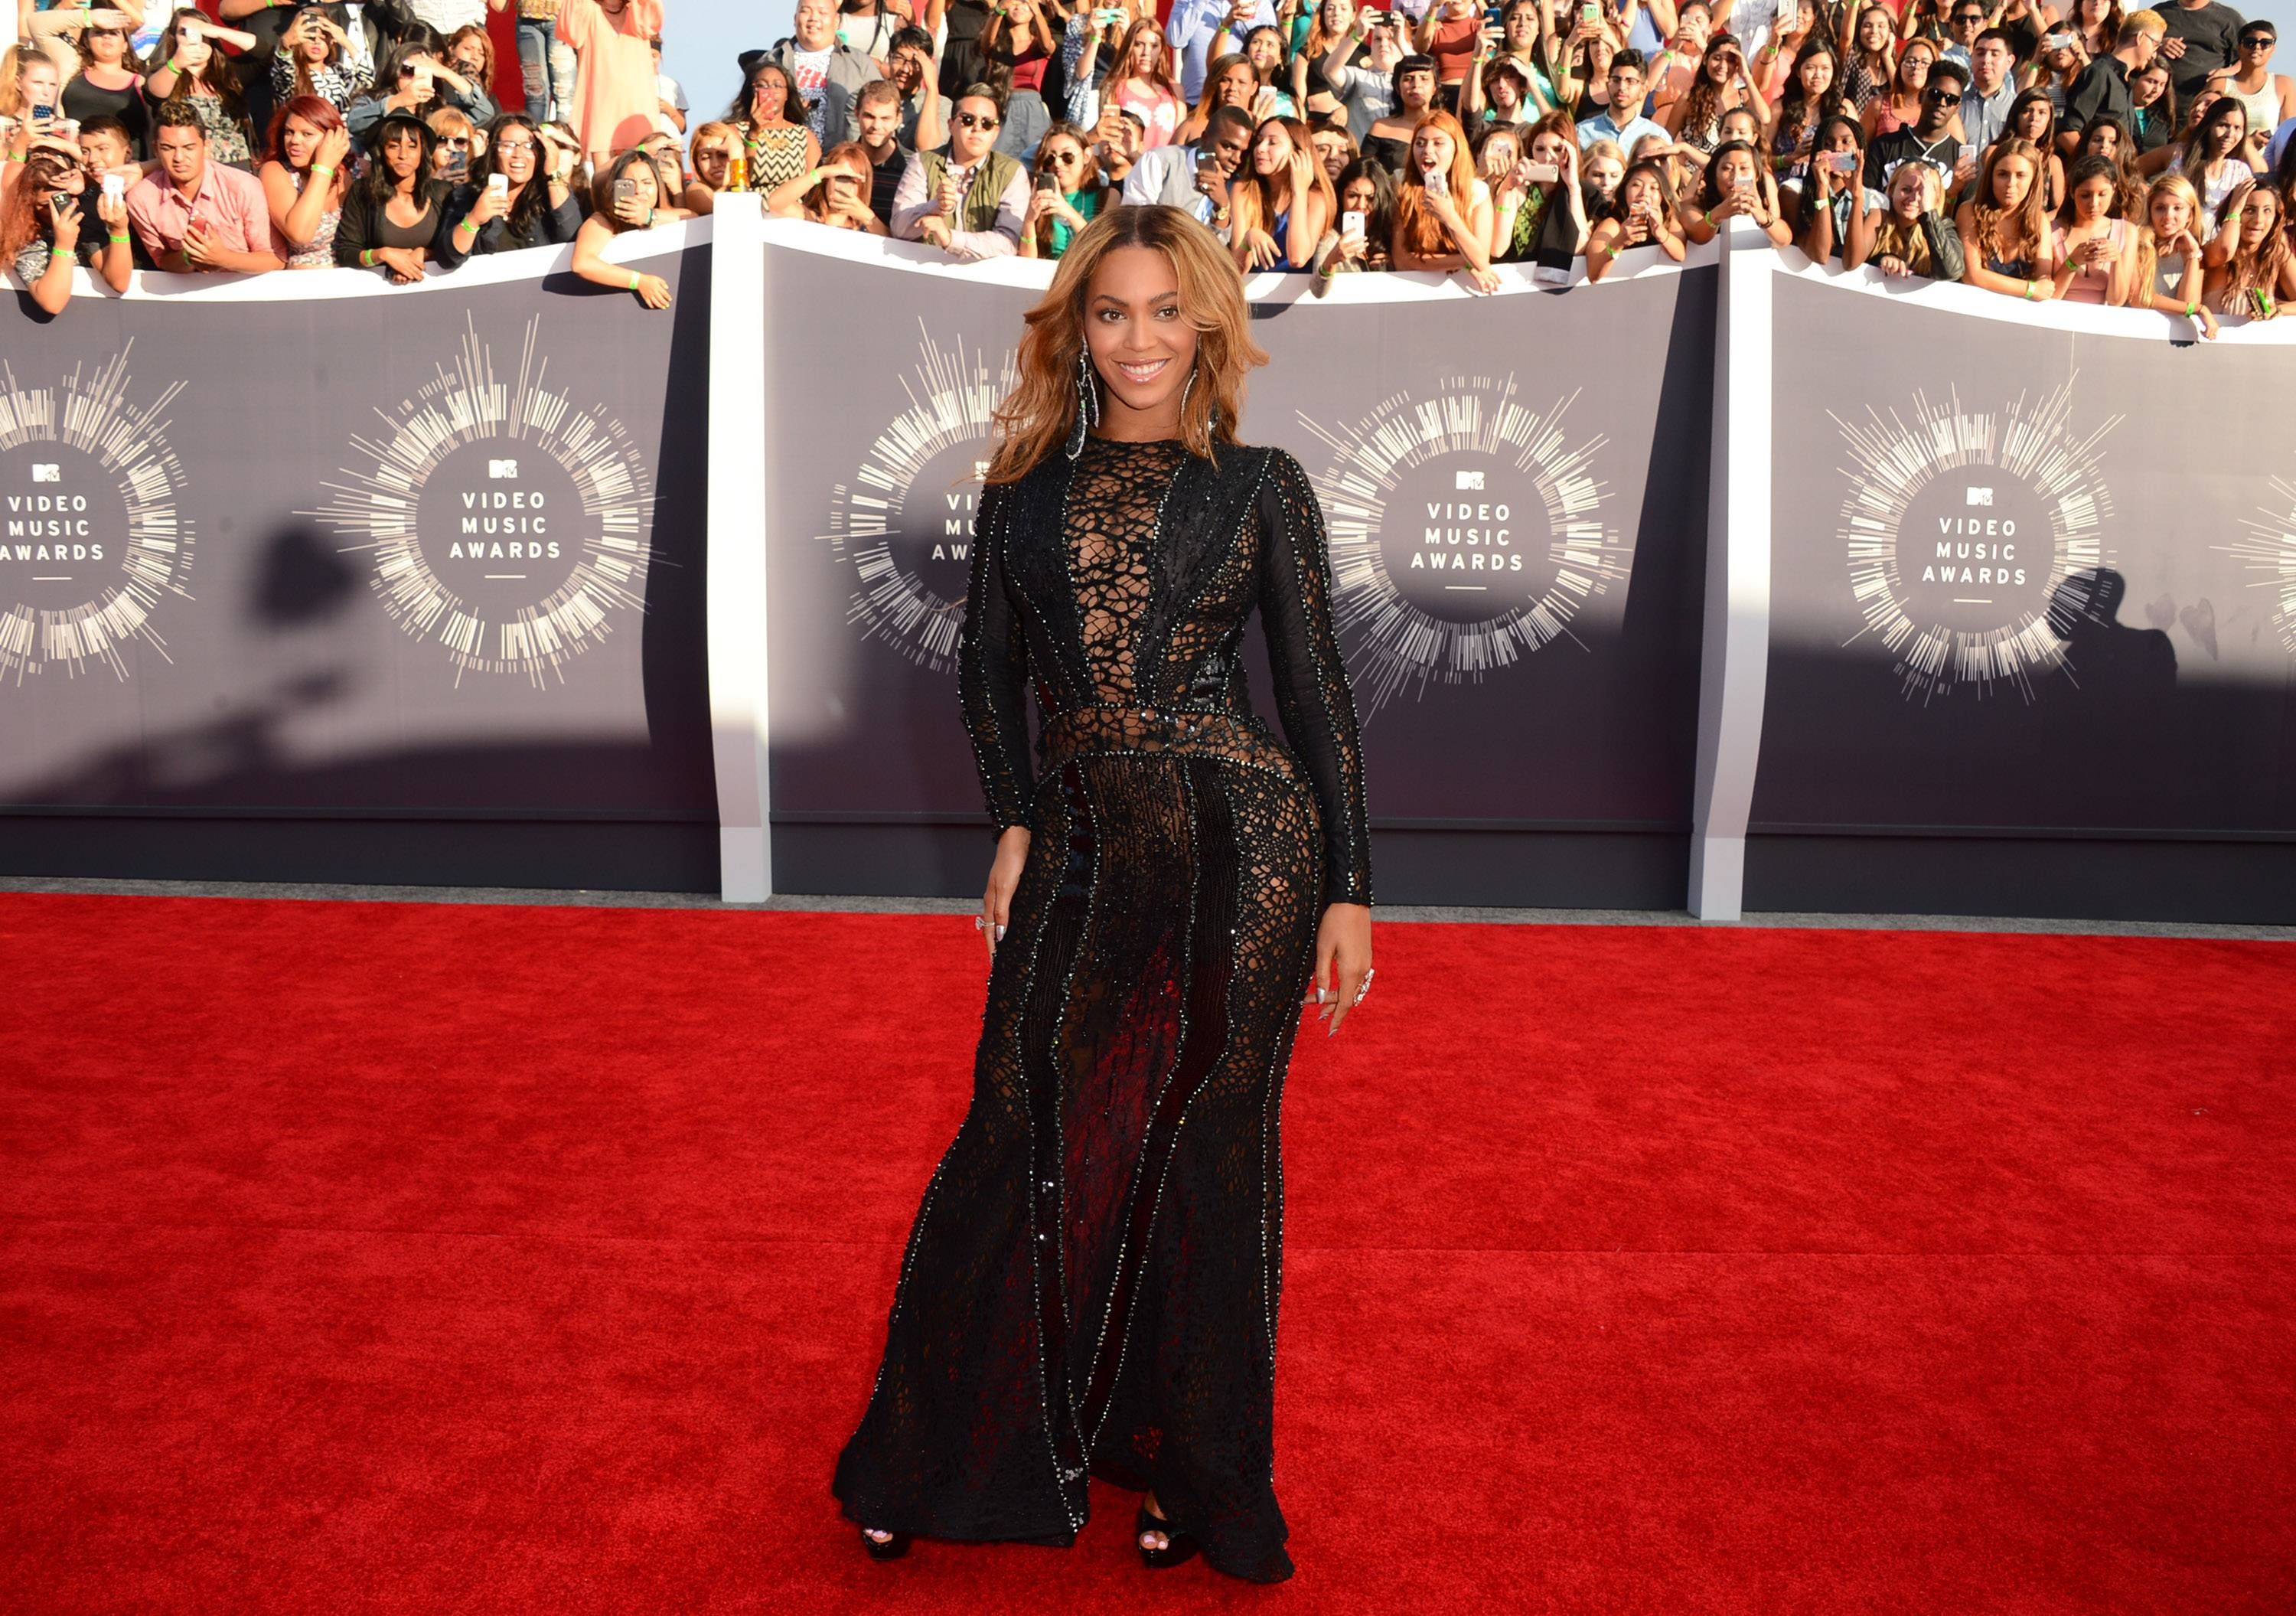 BEST: Queen Beyonce manages to turn basic black on its head in this beautiful gown.